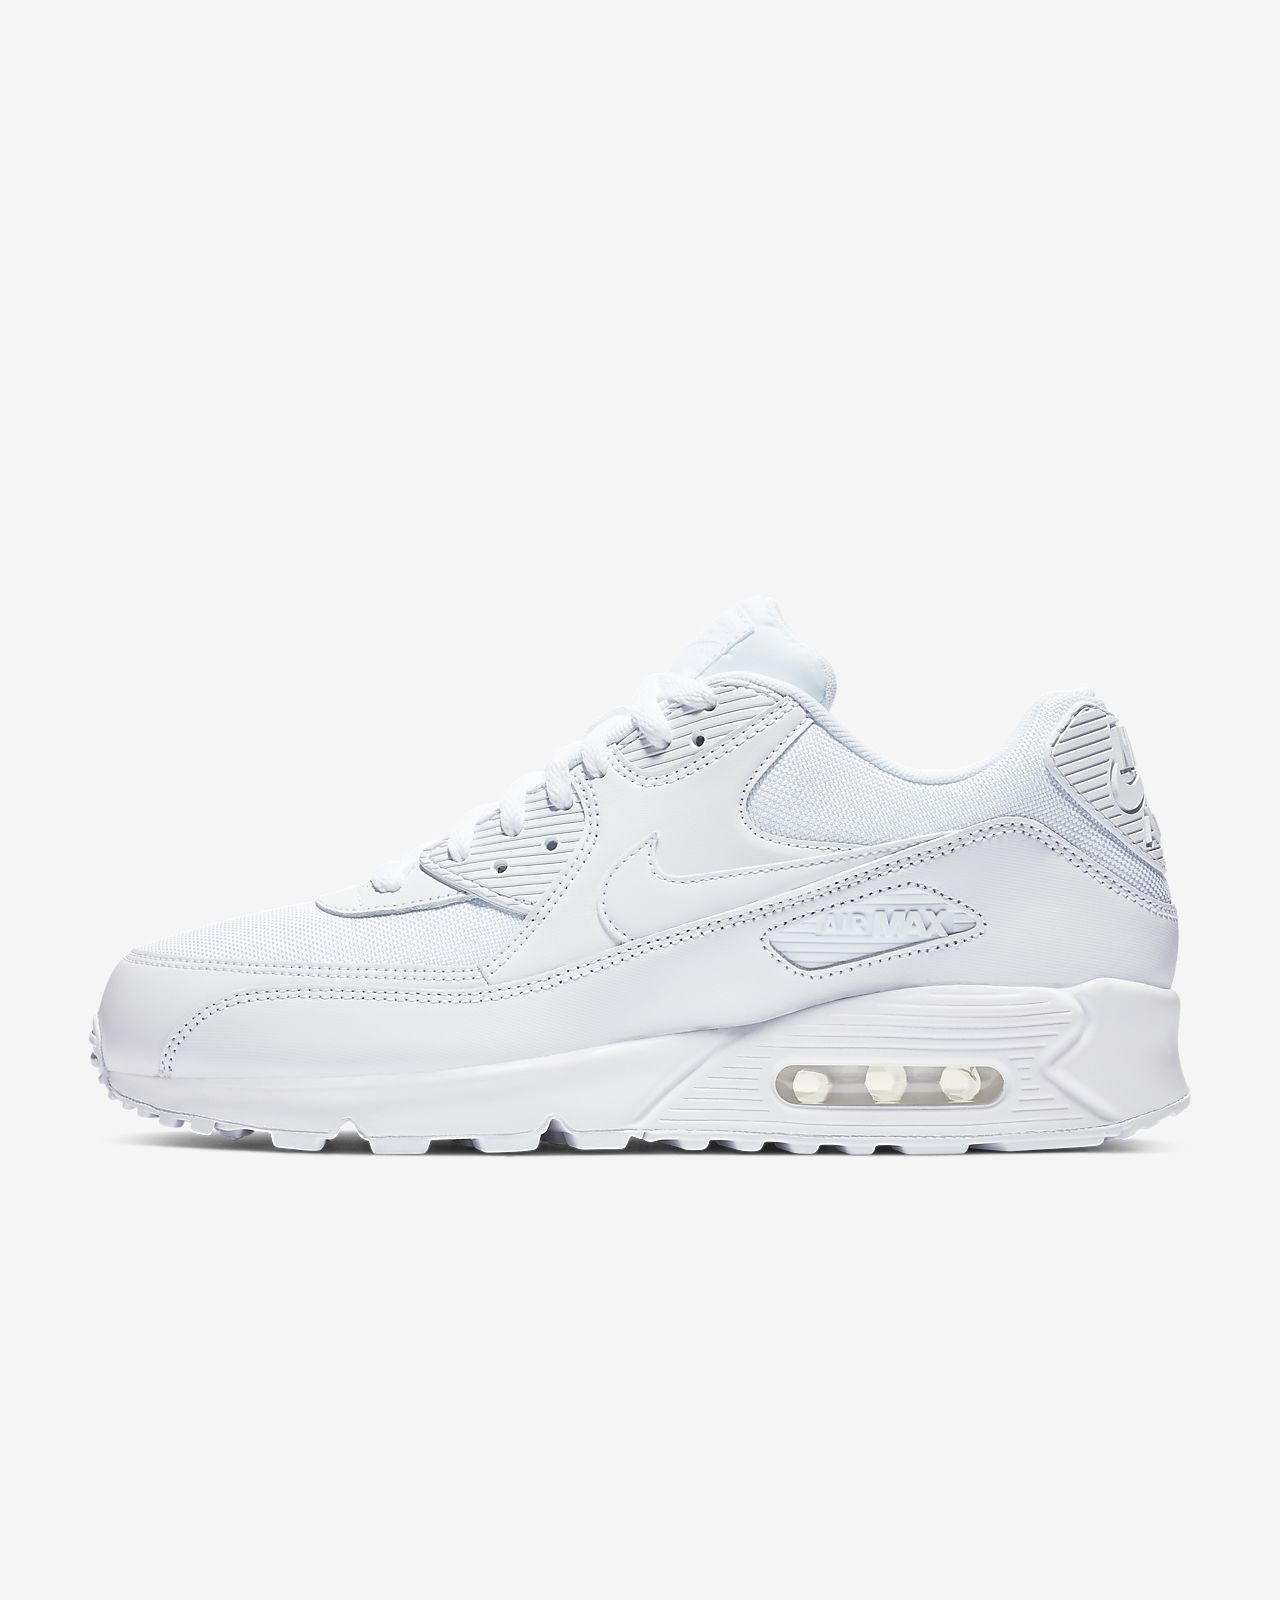 reputable site a4c0a d55df Nike Air Max 90 Essential